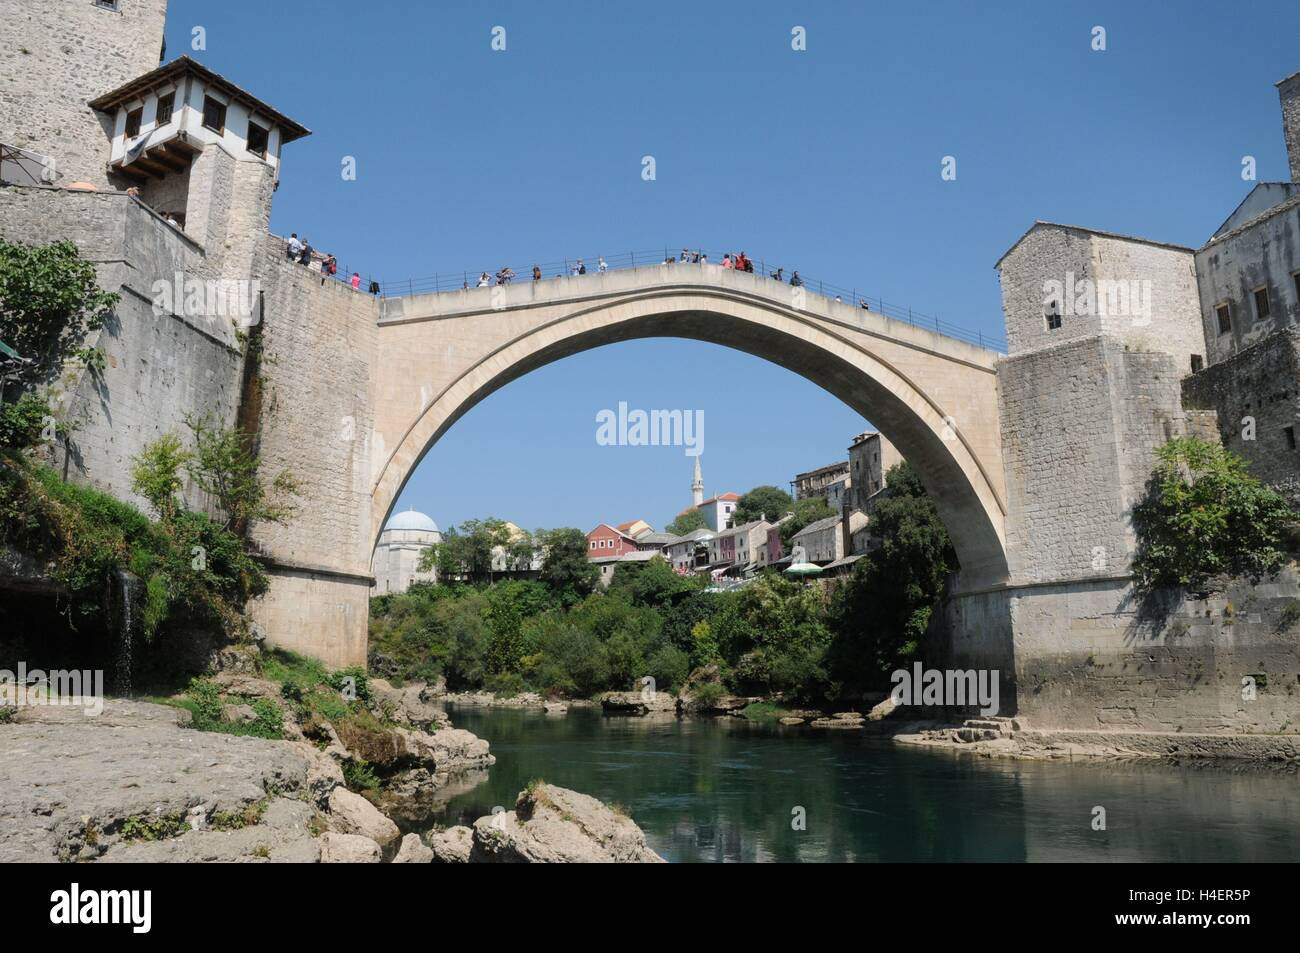 The Stari Most bridge in Mostar, Bosnia Herzegovina - Stock Image